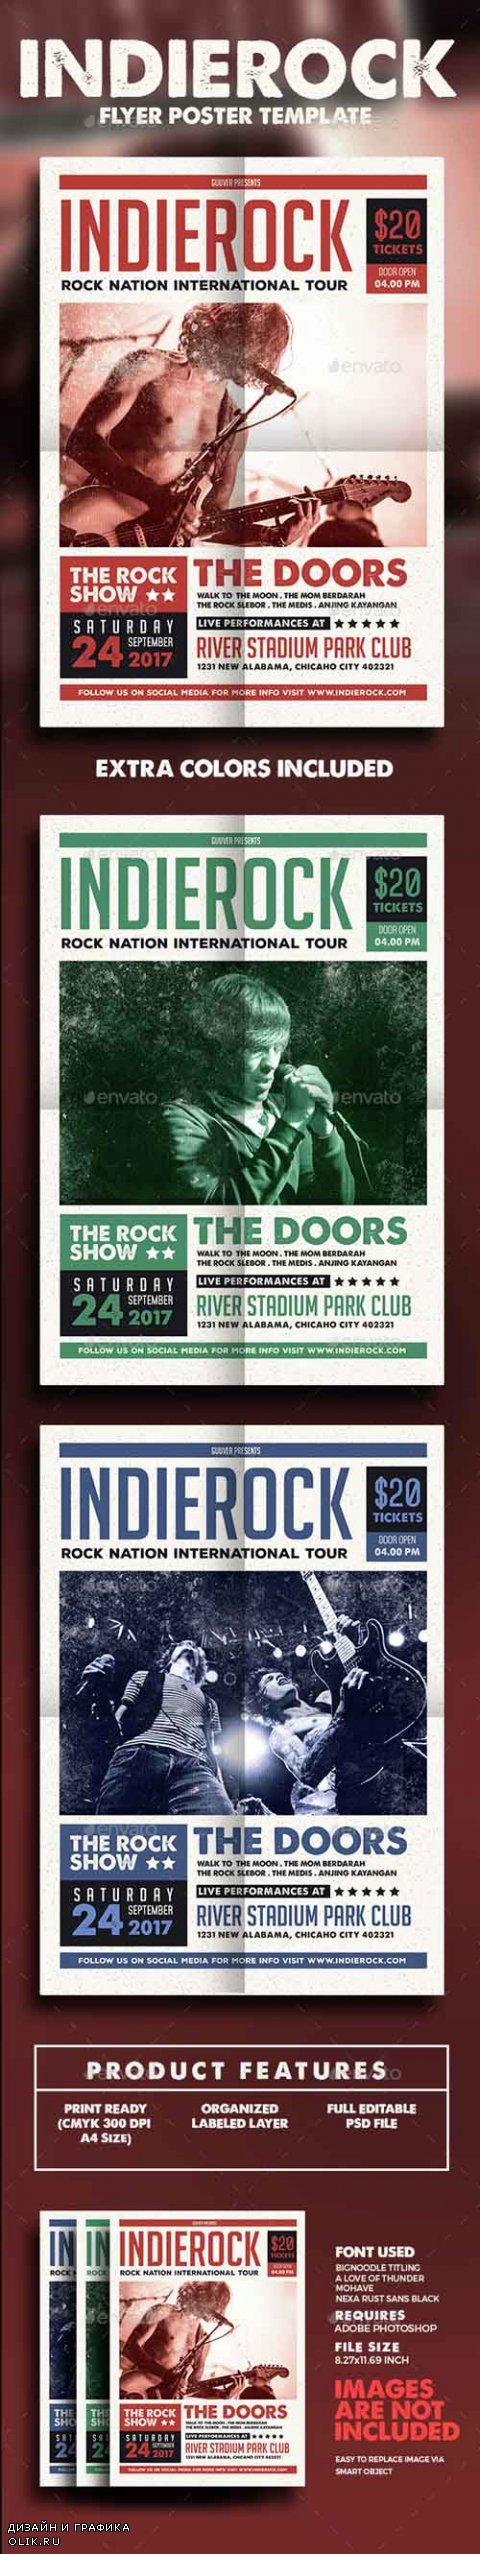 Indie Rock Flyer/Poster 14635588